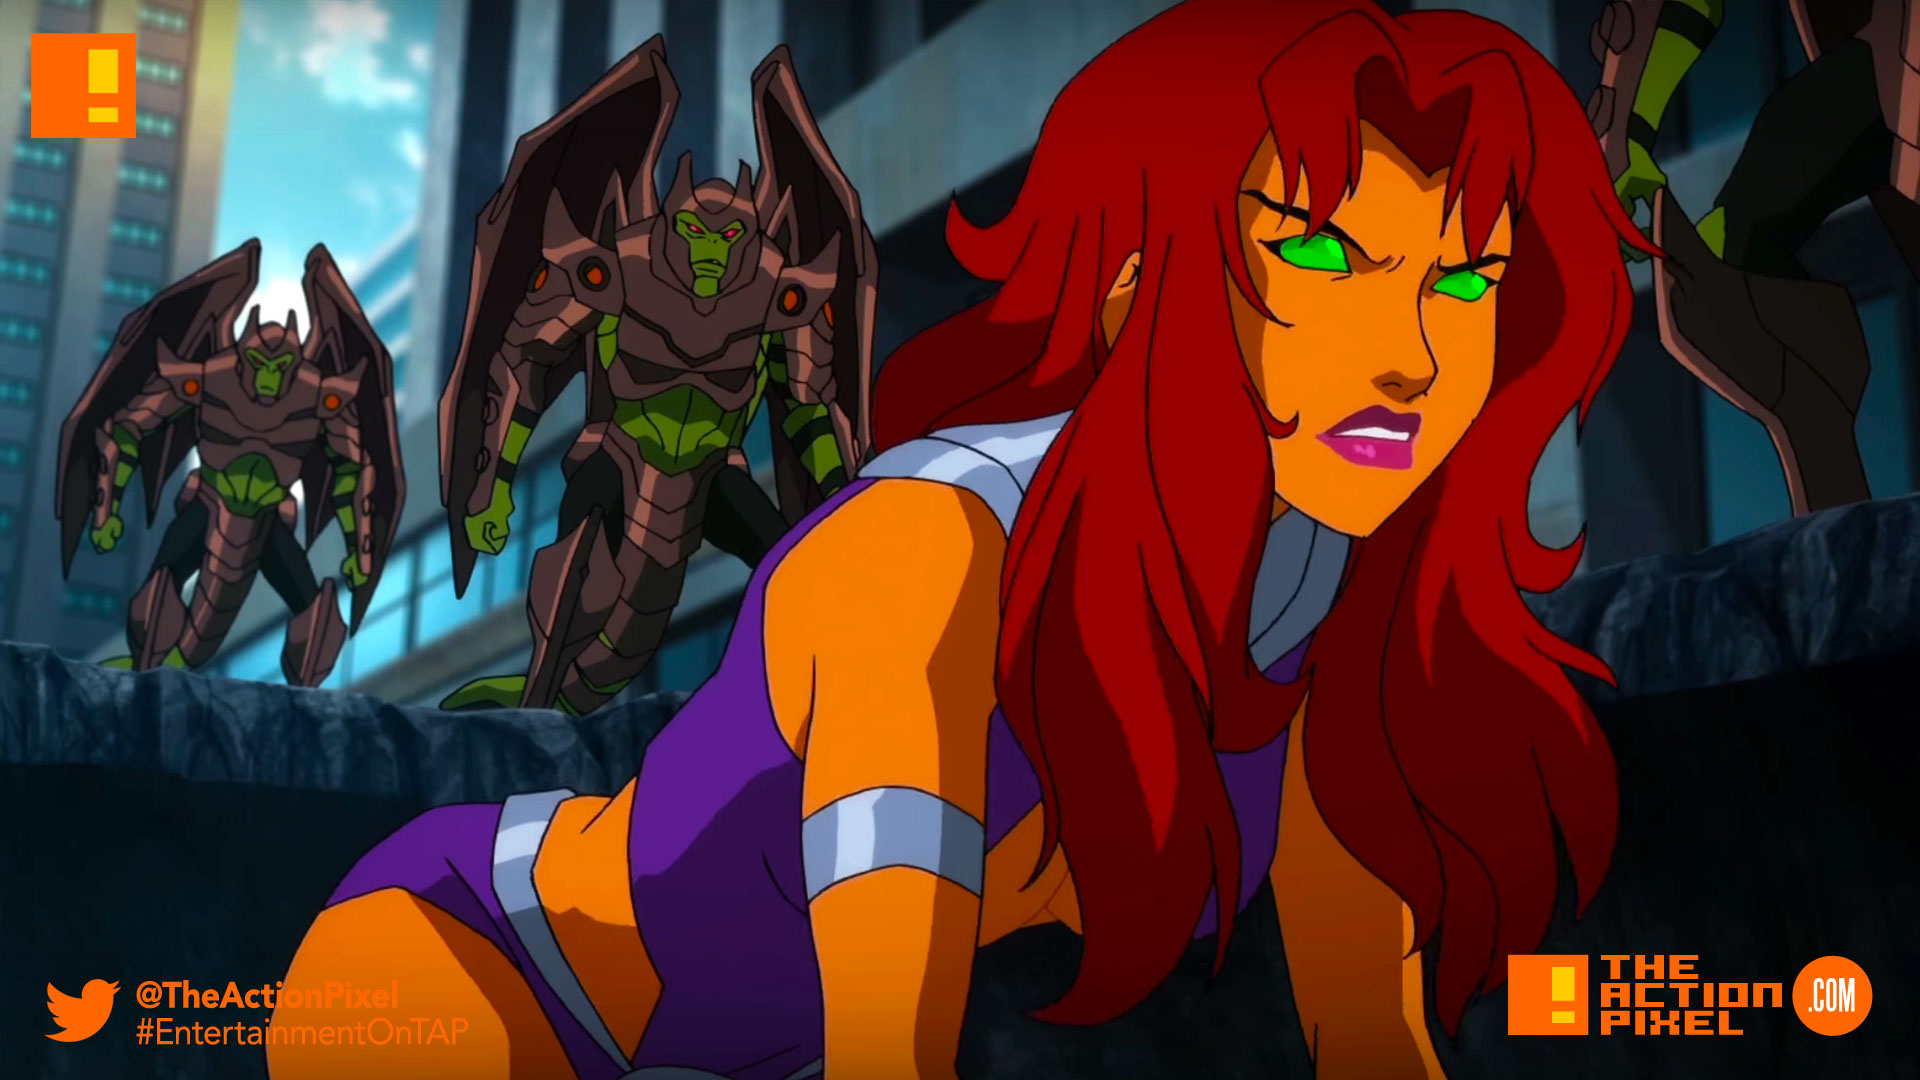 Starfire Gets A First Class Teen Titans Assist In New Teen Titans The Judas -3027